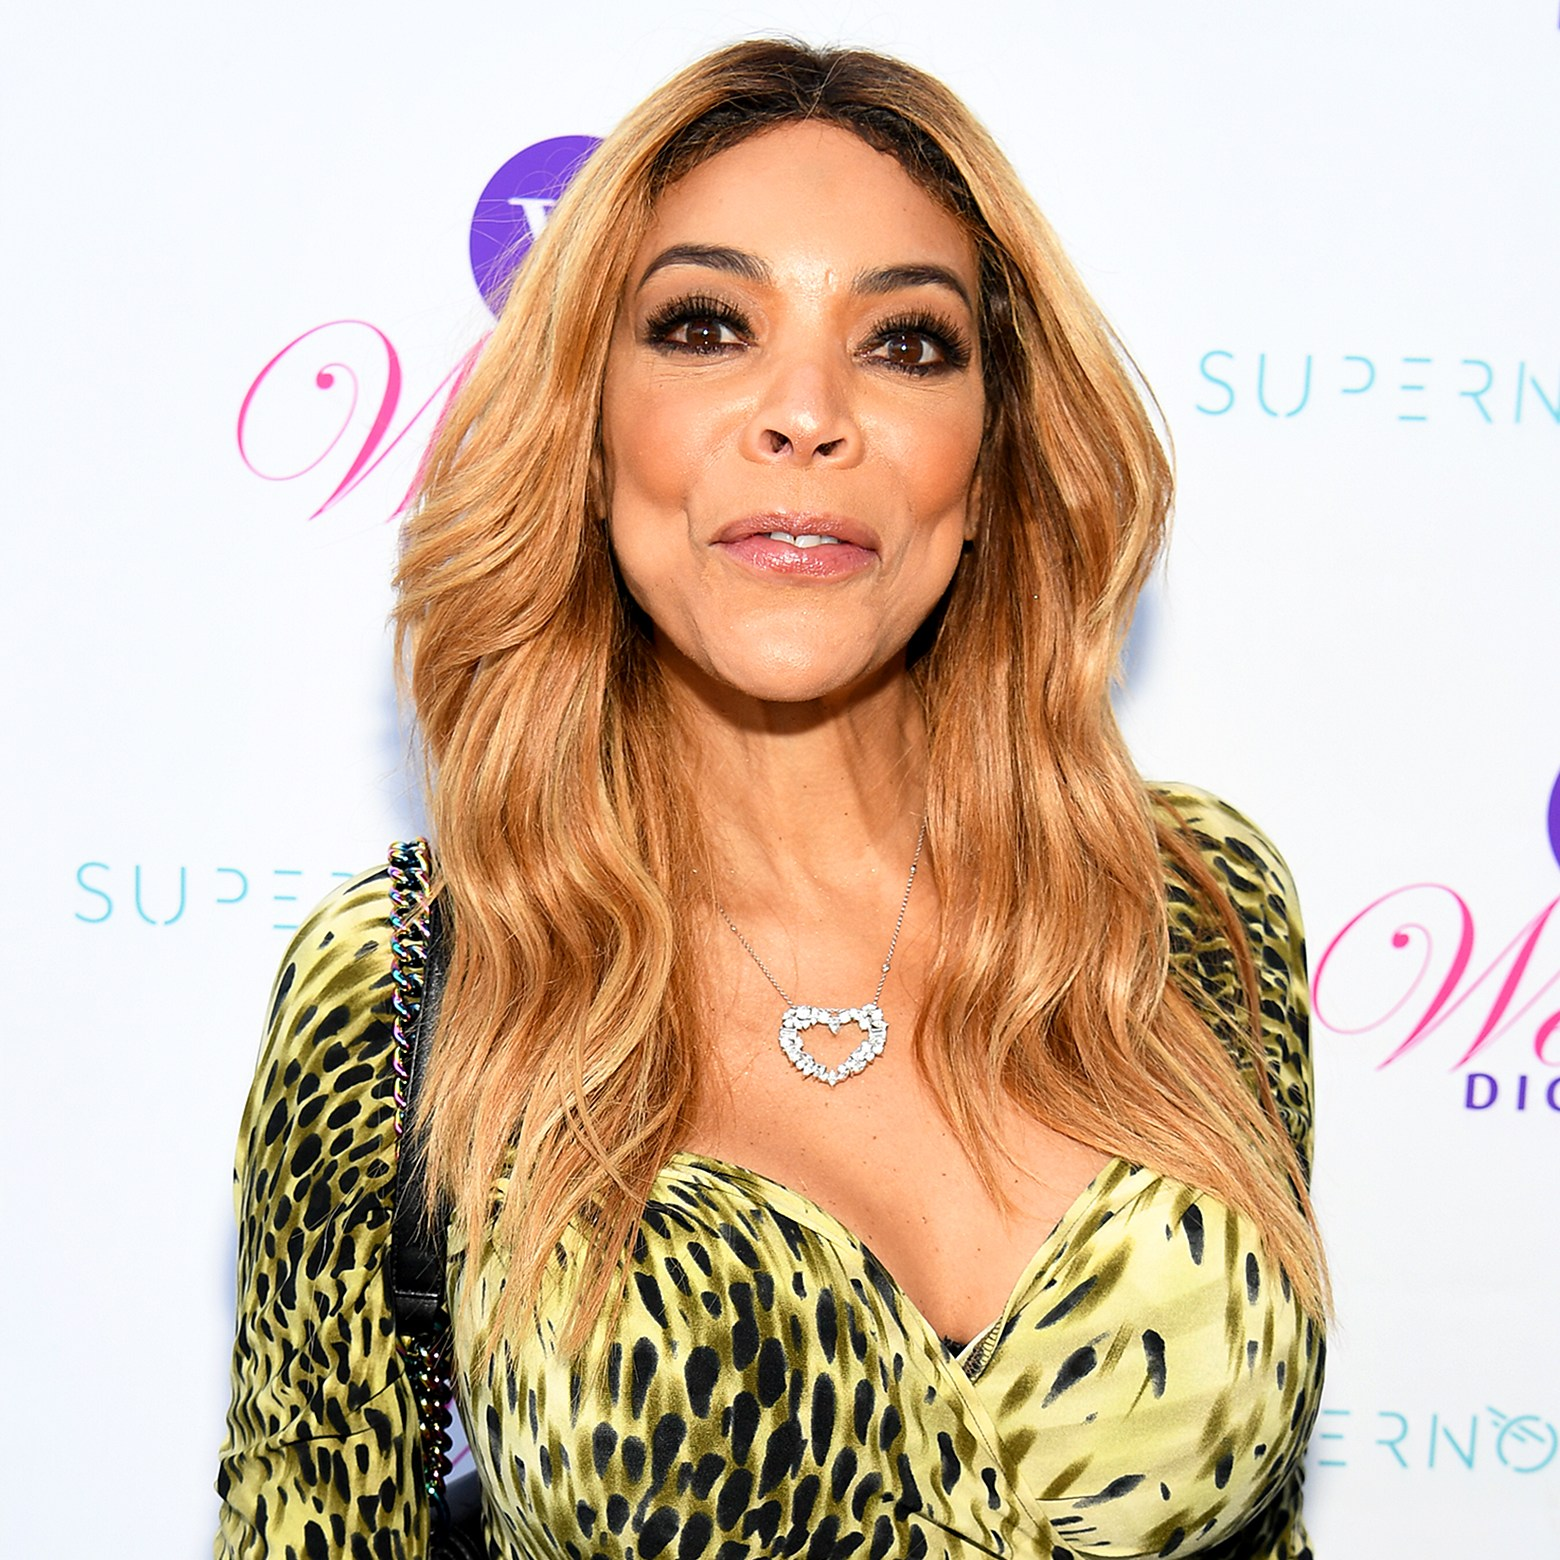 Wendy Williams attends Wendy Digital Event at Atlanta Tech Village Rooftop on August 29, 2017.